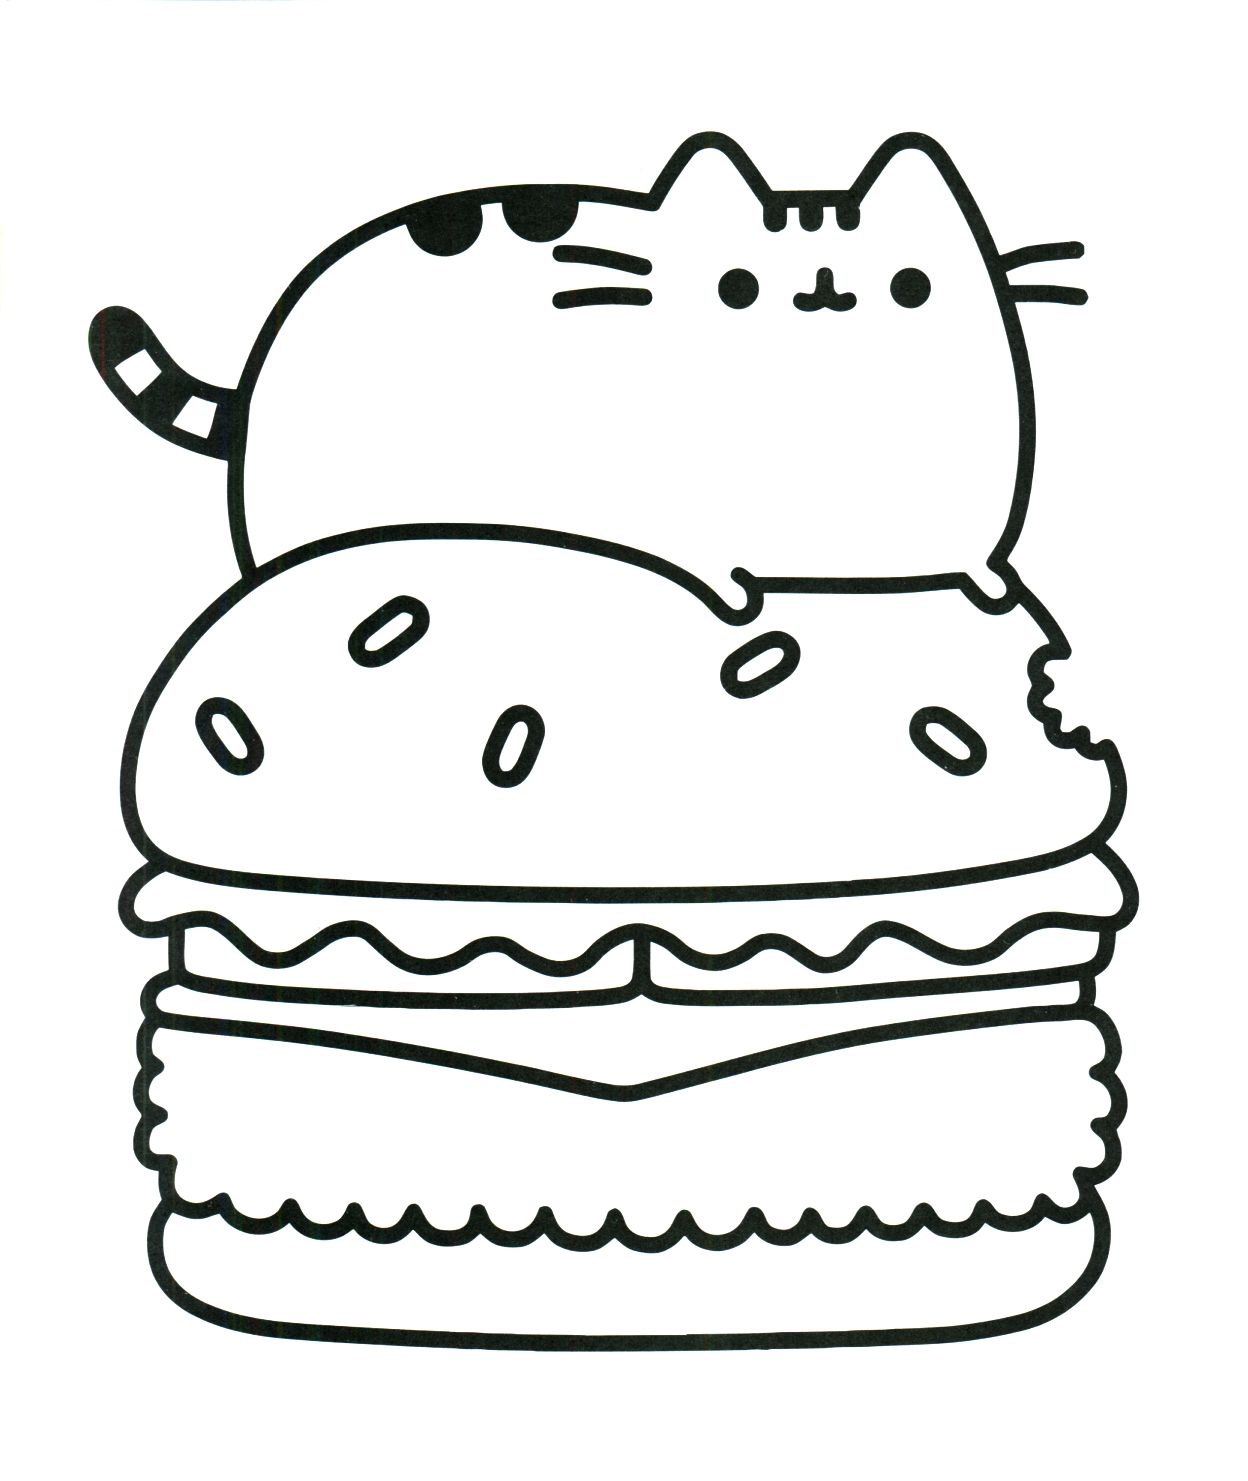 Kawaii Coloring Pages Ready To Print In 2020 Pusheen Coloring Pages Unicorn Coloring Pages Cat Coloring Page